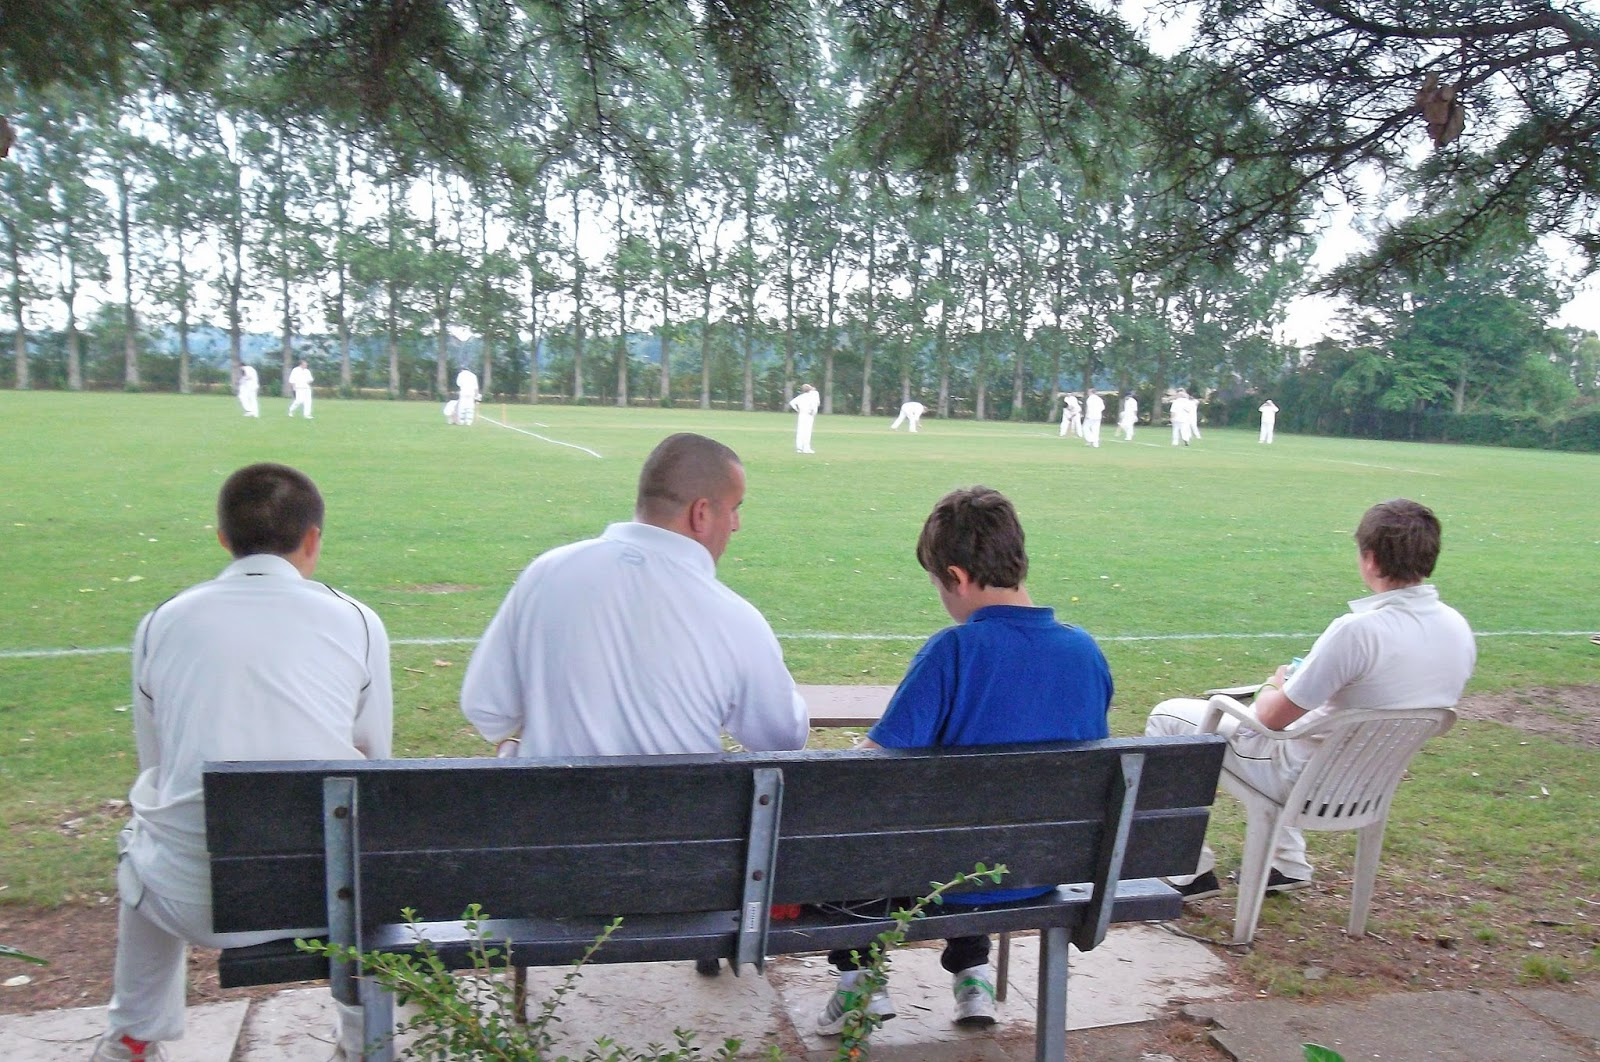 Cricket being played at Brigg Recreation Ground - pictured by Nigel Fisher's Brigg Blog